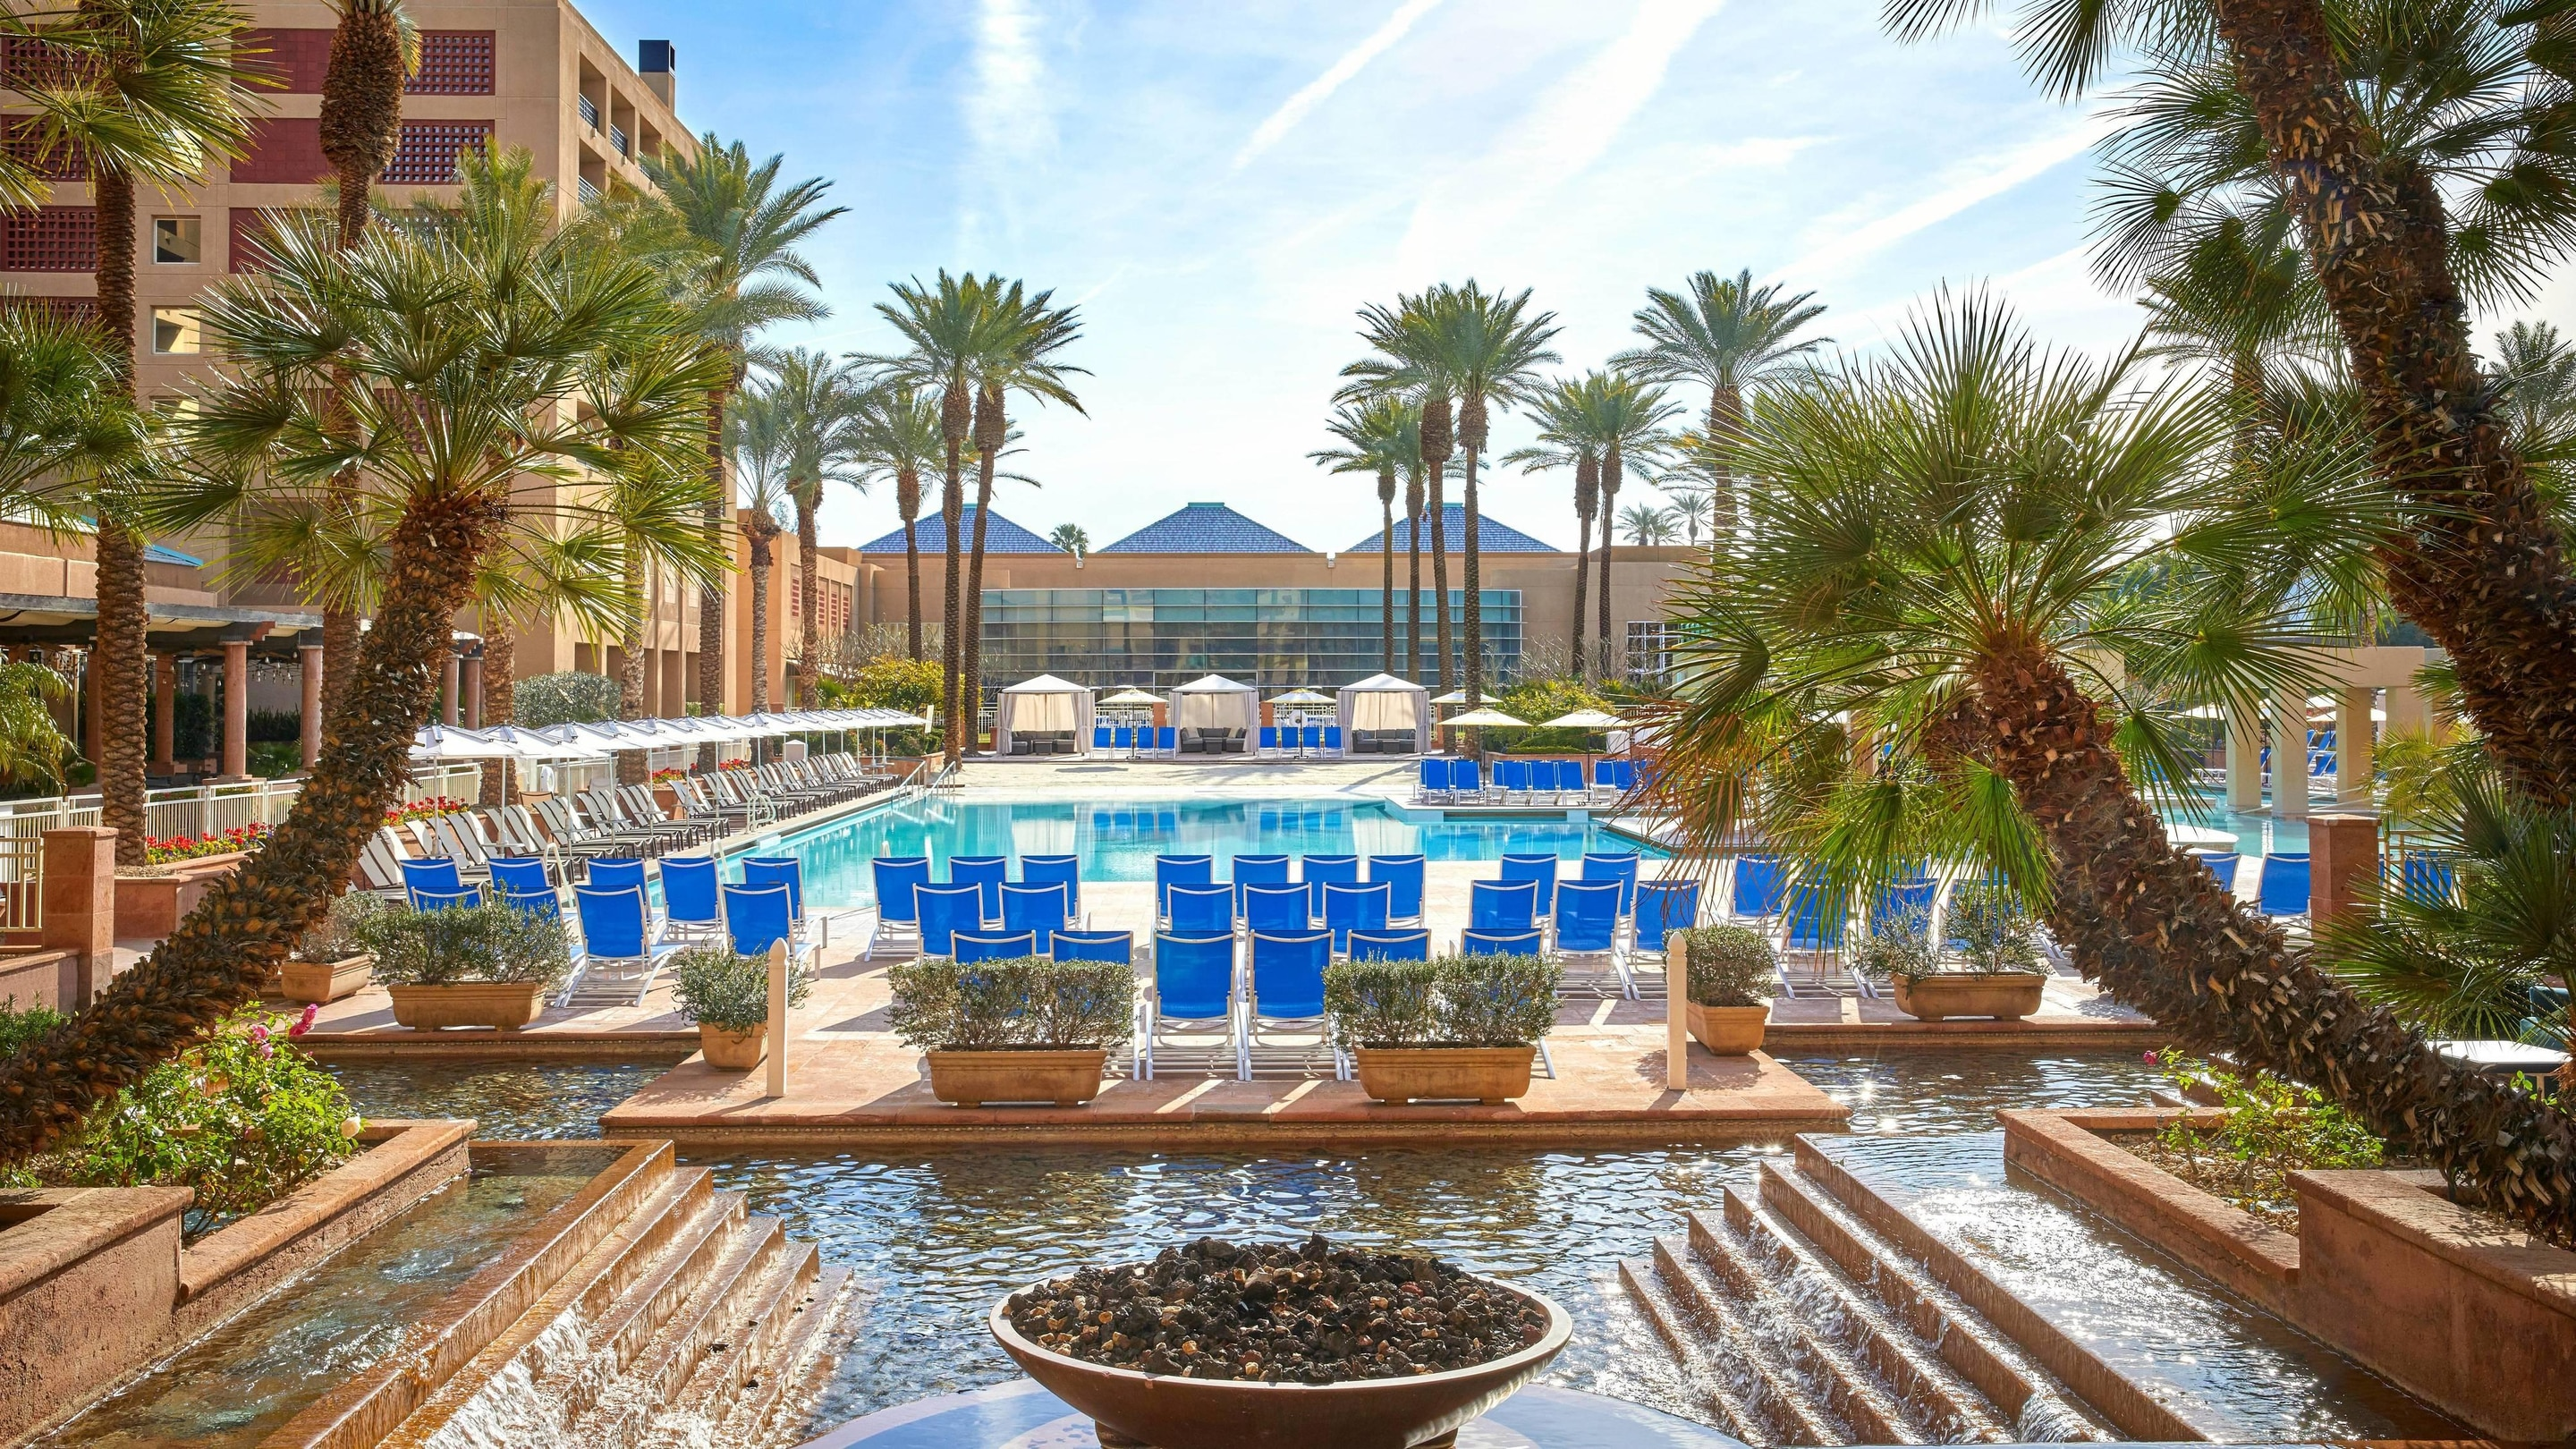 An expansive outdoor pool surrounded by palm trees and blue fabric chairs.